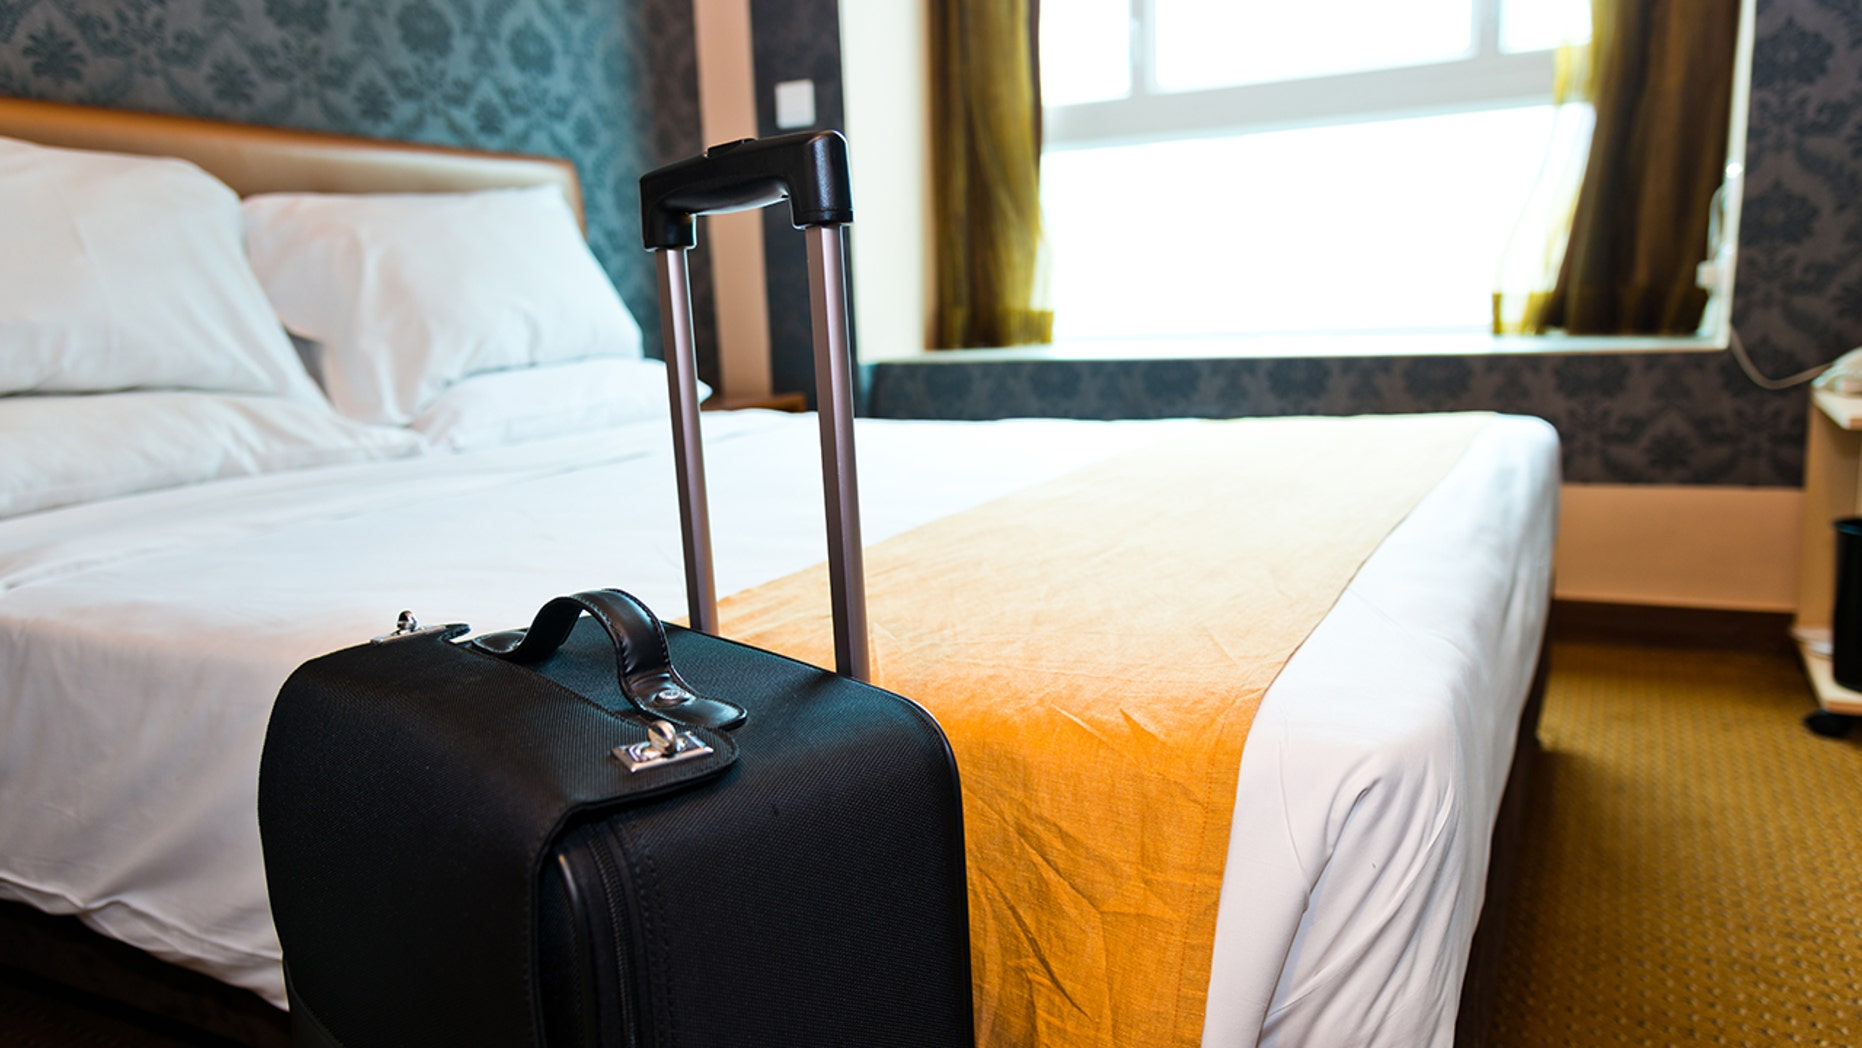 Follow these tips to spot bedbugs in your hotel room